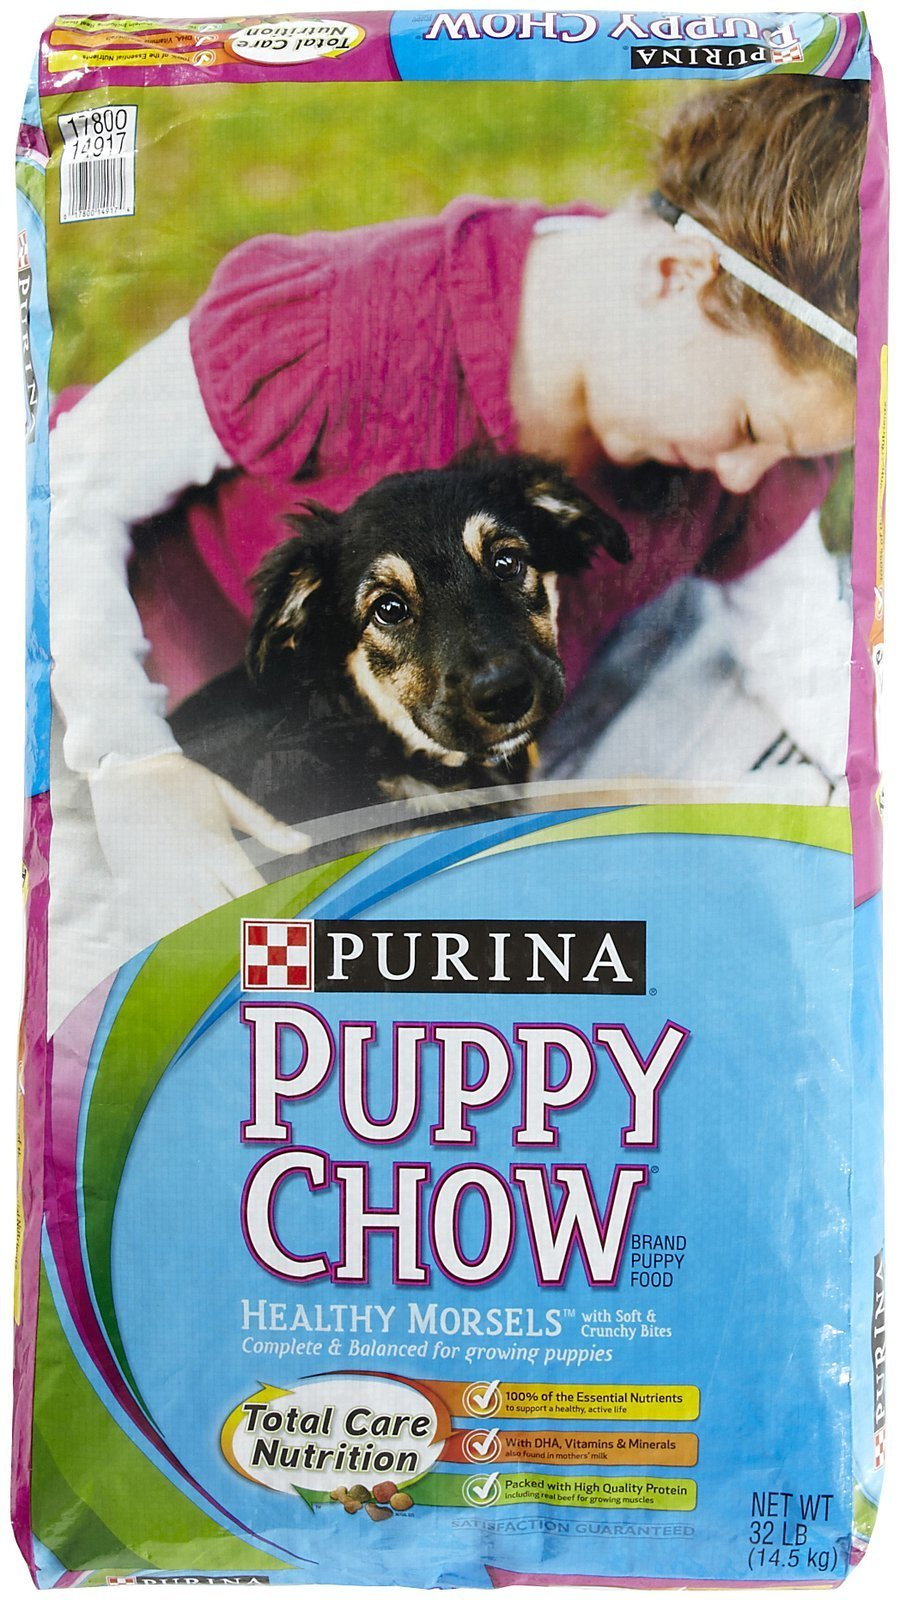 Purina 178112 Puppy Chow Healthy Morsels, 32-Pound by Purina